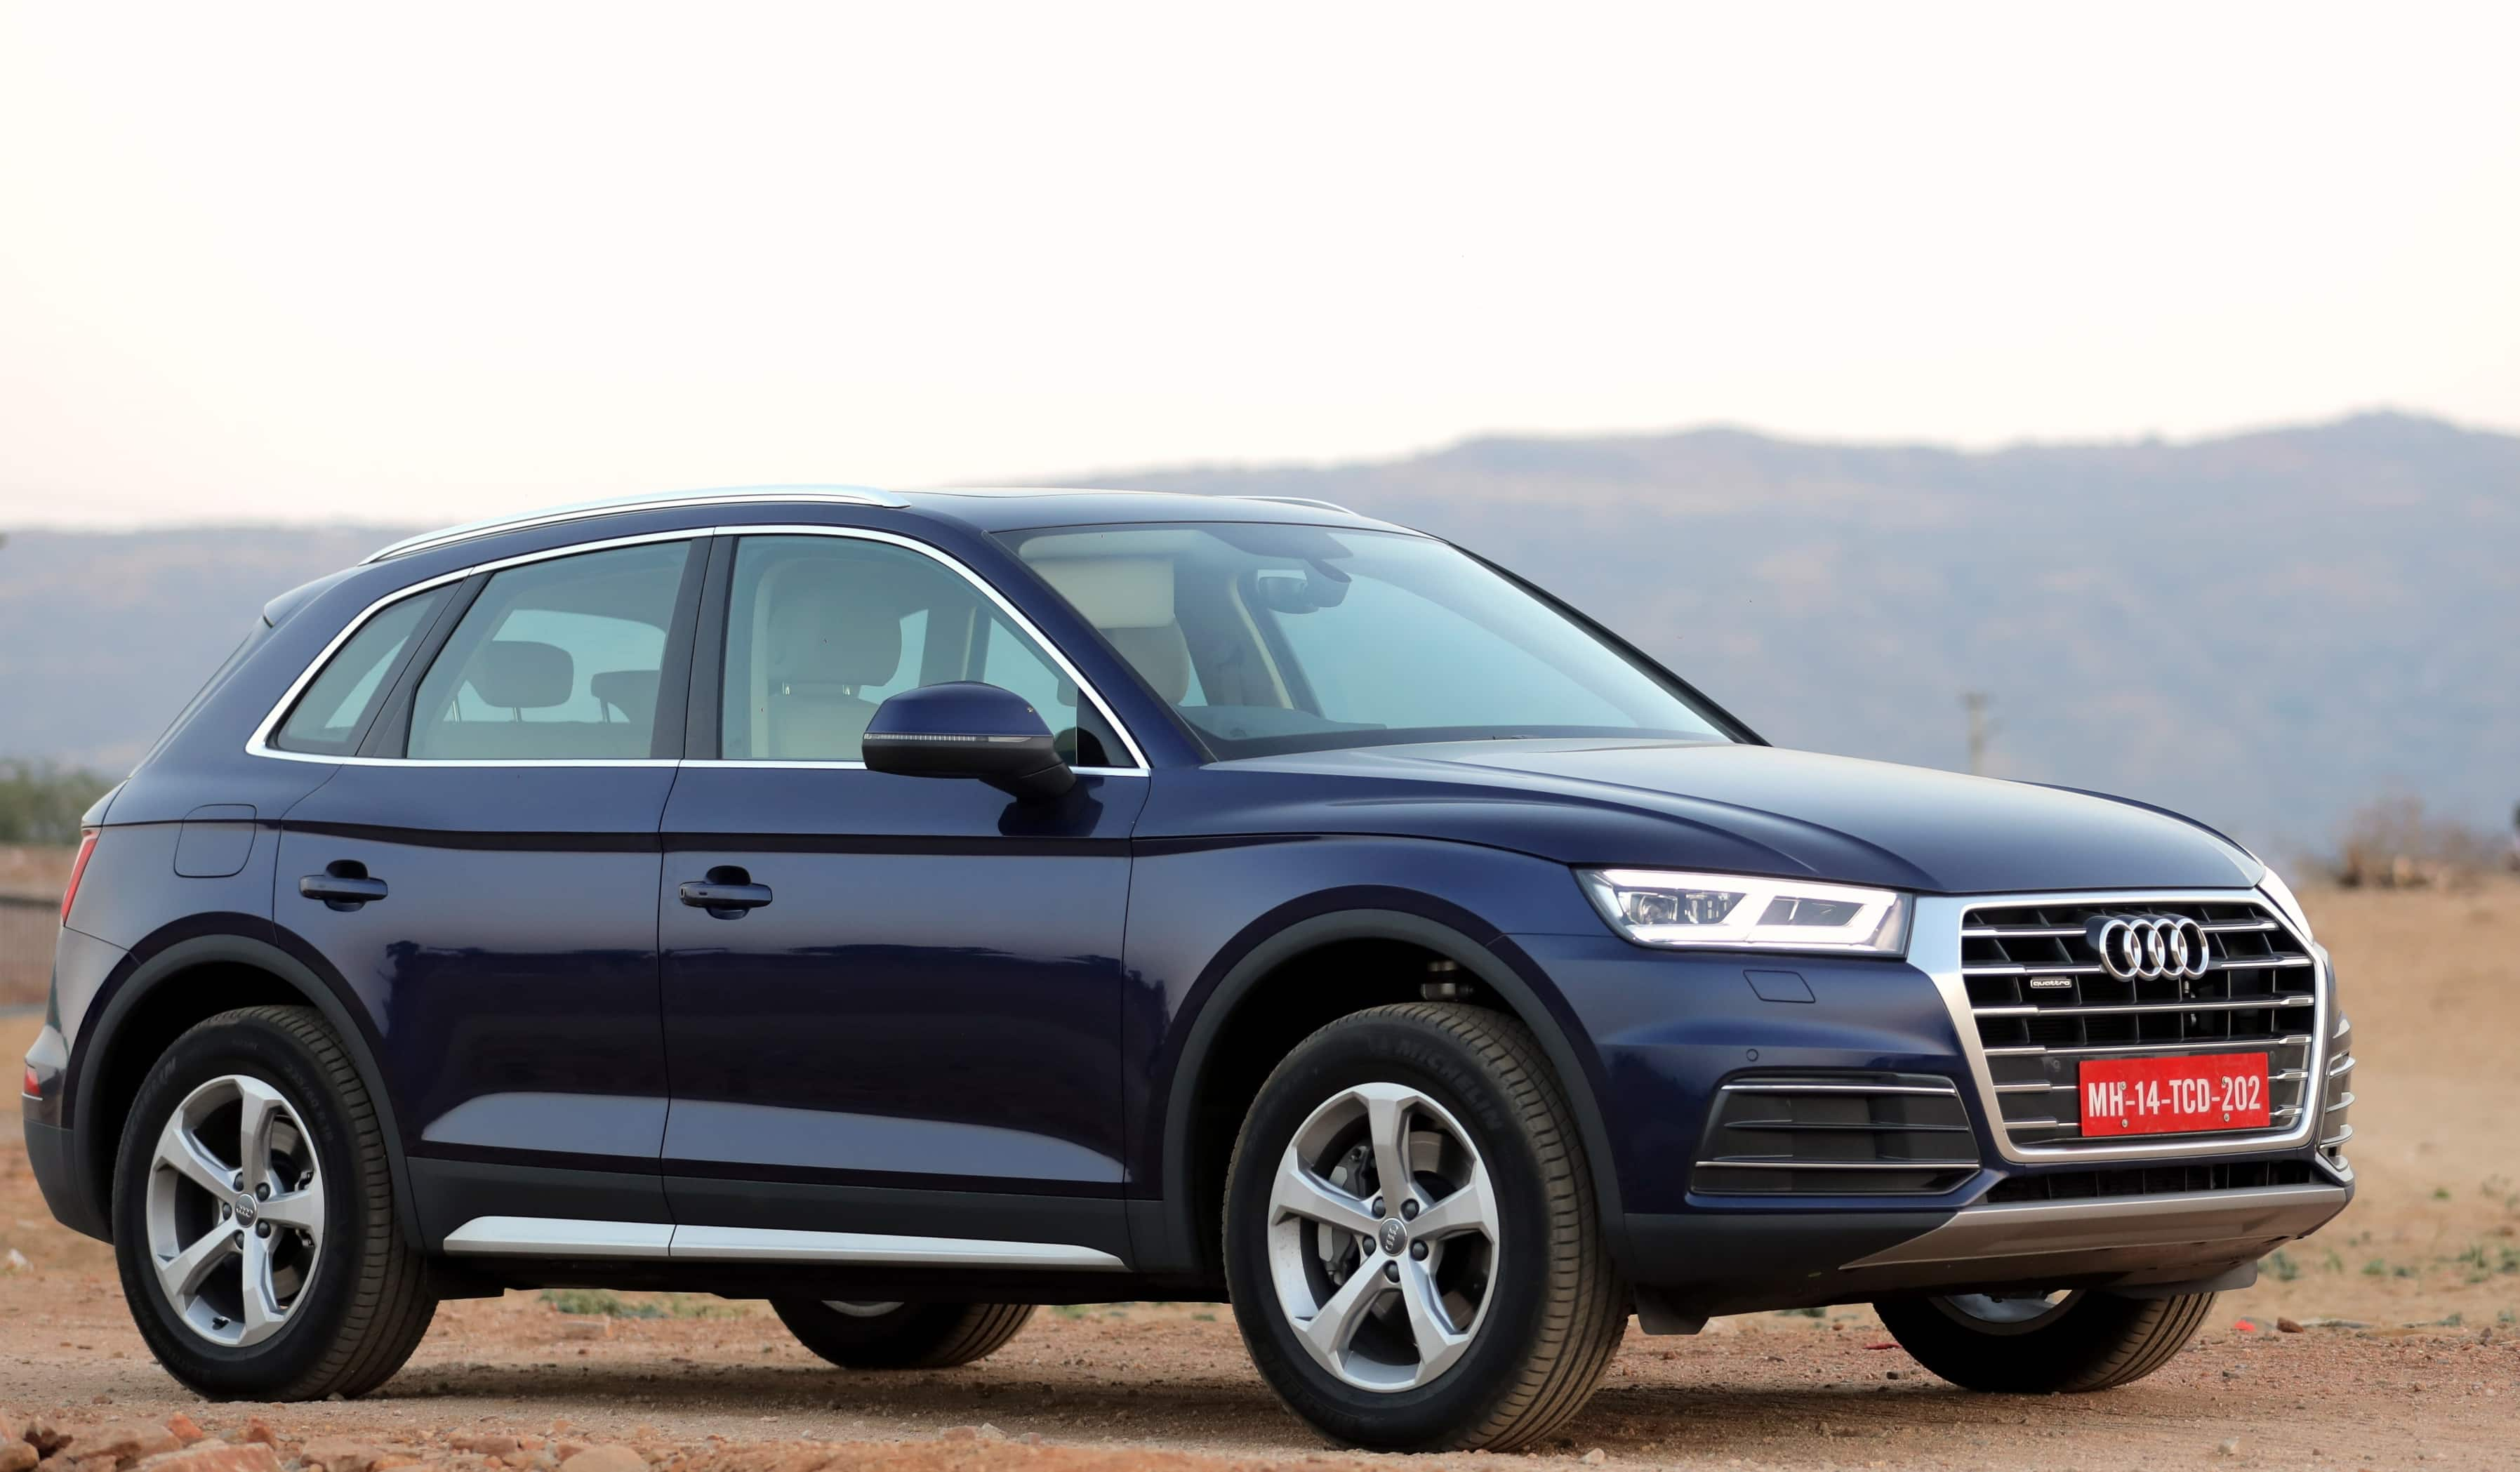 Audi Q5 2018 Launched In India At INR 53.25 Lakh; Interior